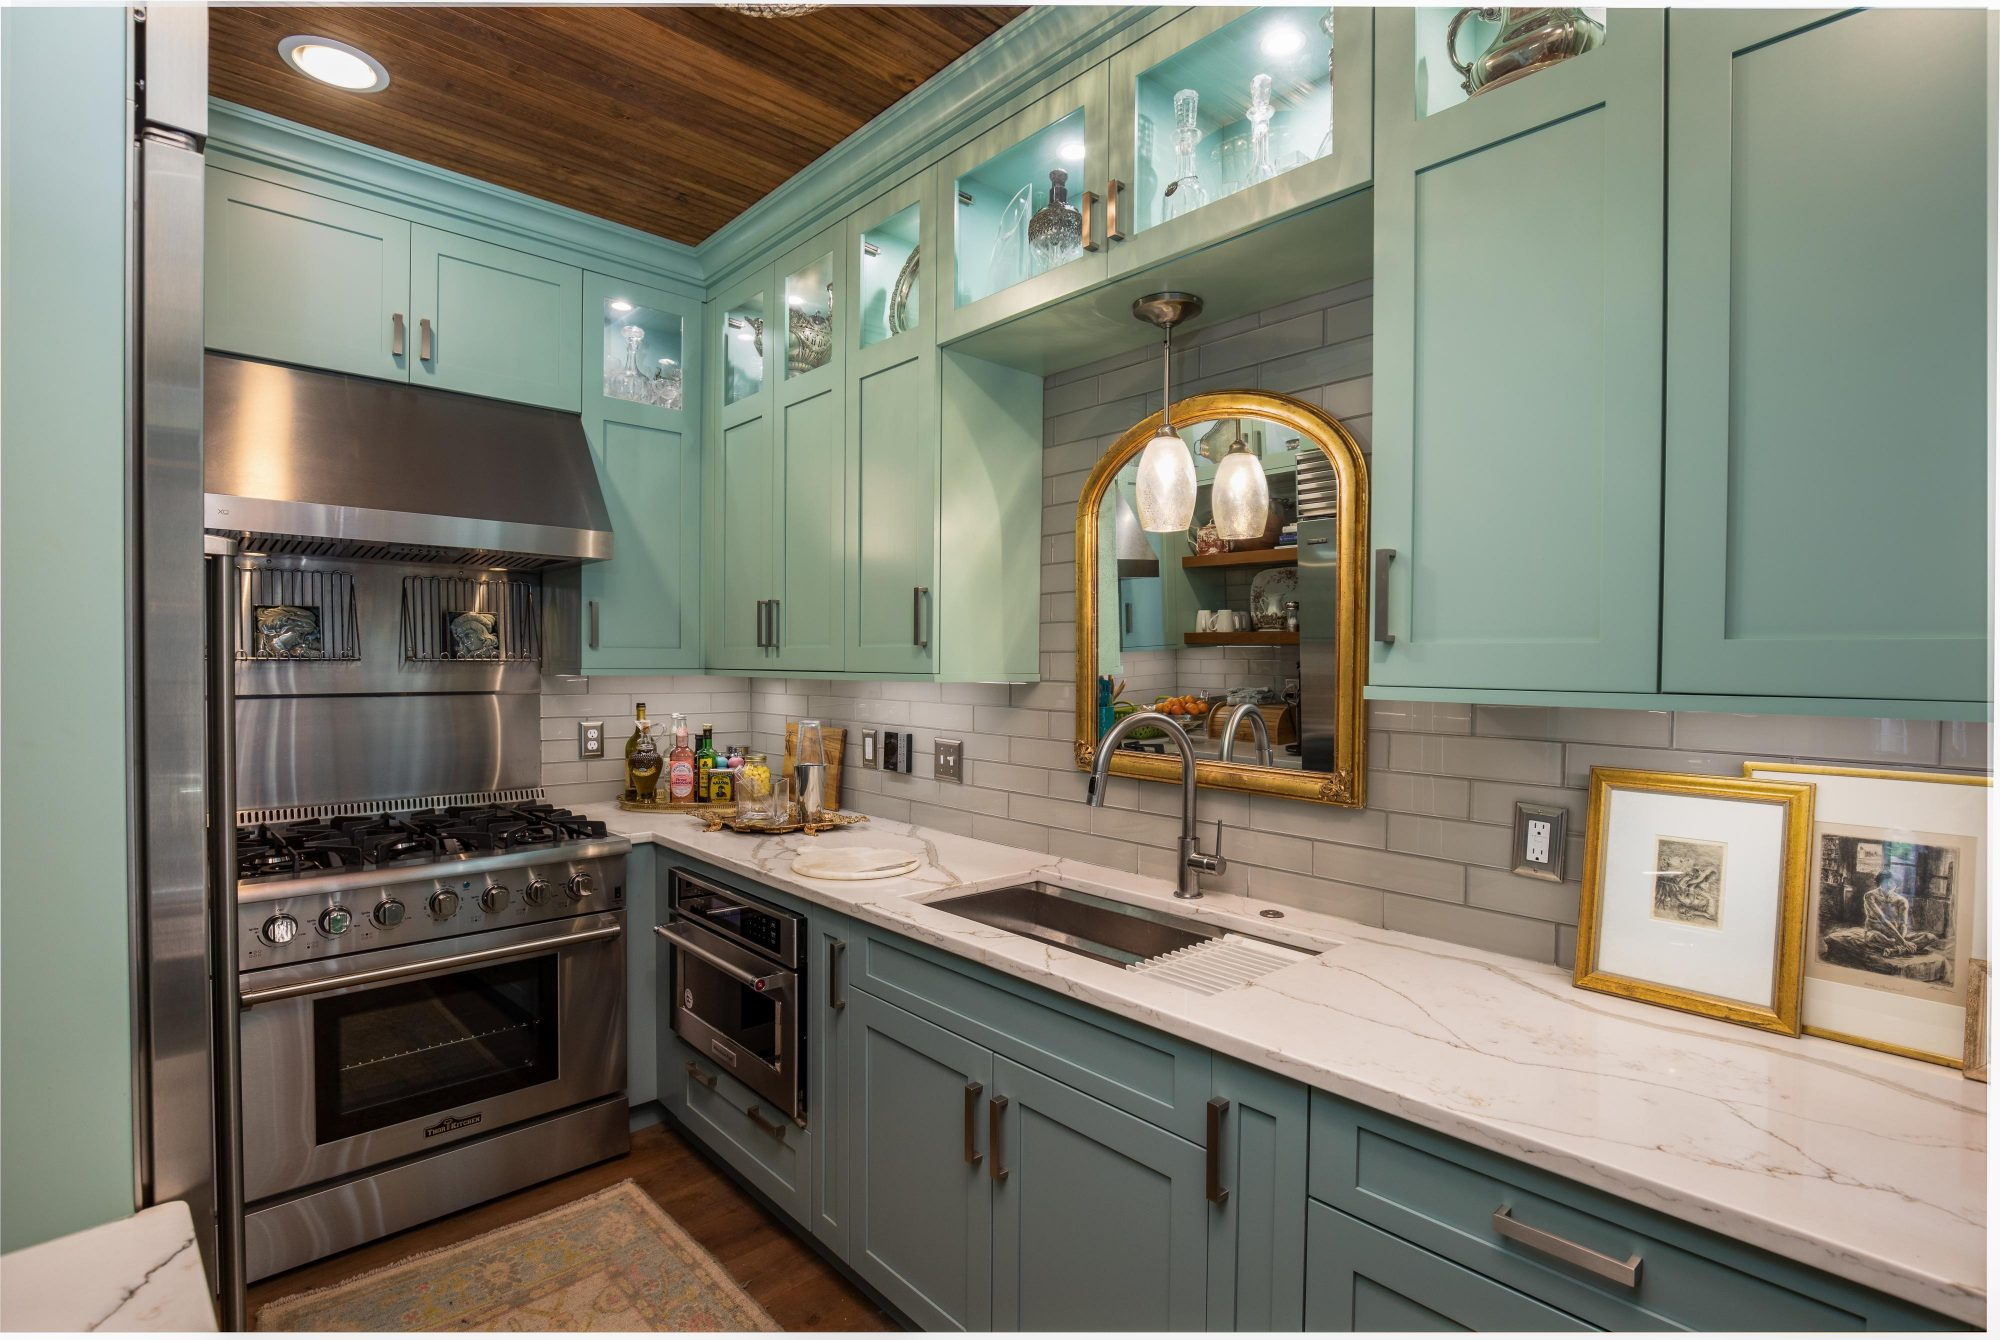 17 Water Street House for Sale in Charleston